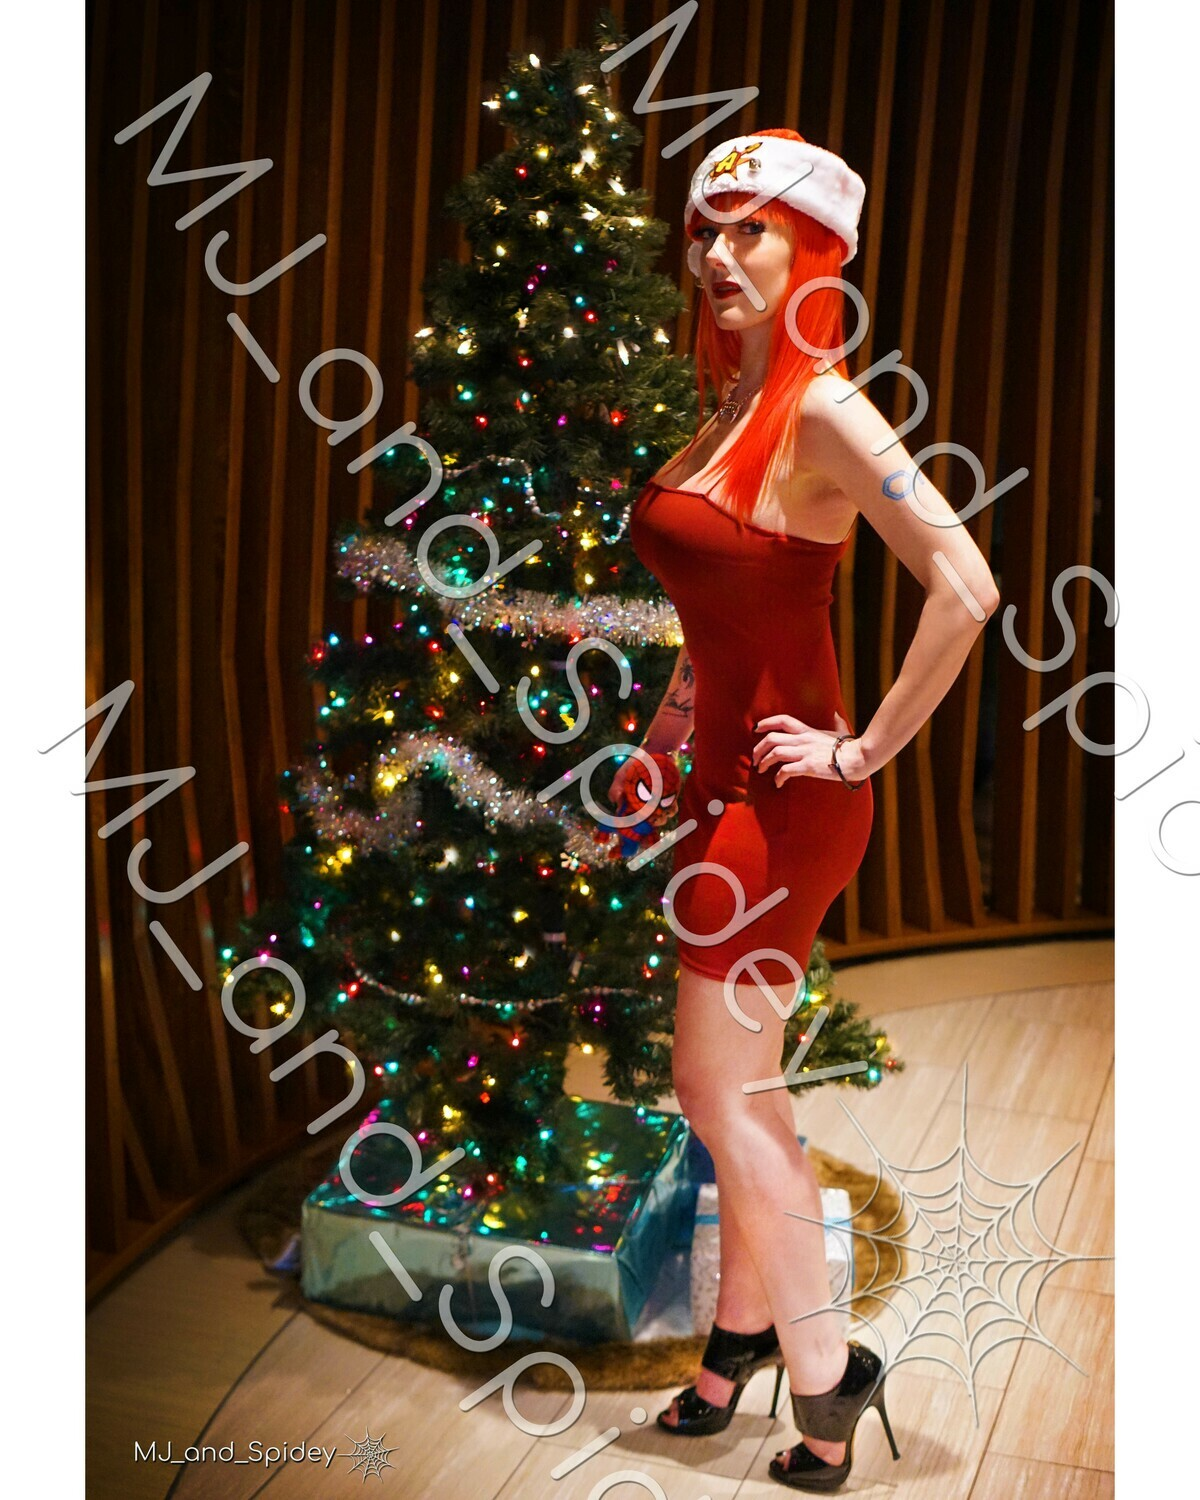 Marvel - Spider-Man - Mary Jane Watson - Christmas No. 1 - Digital Cosplay Image (@MJ_and_Spidey, MJ and Spidey, Comics)